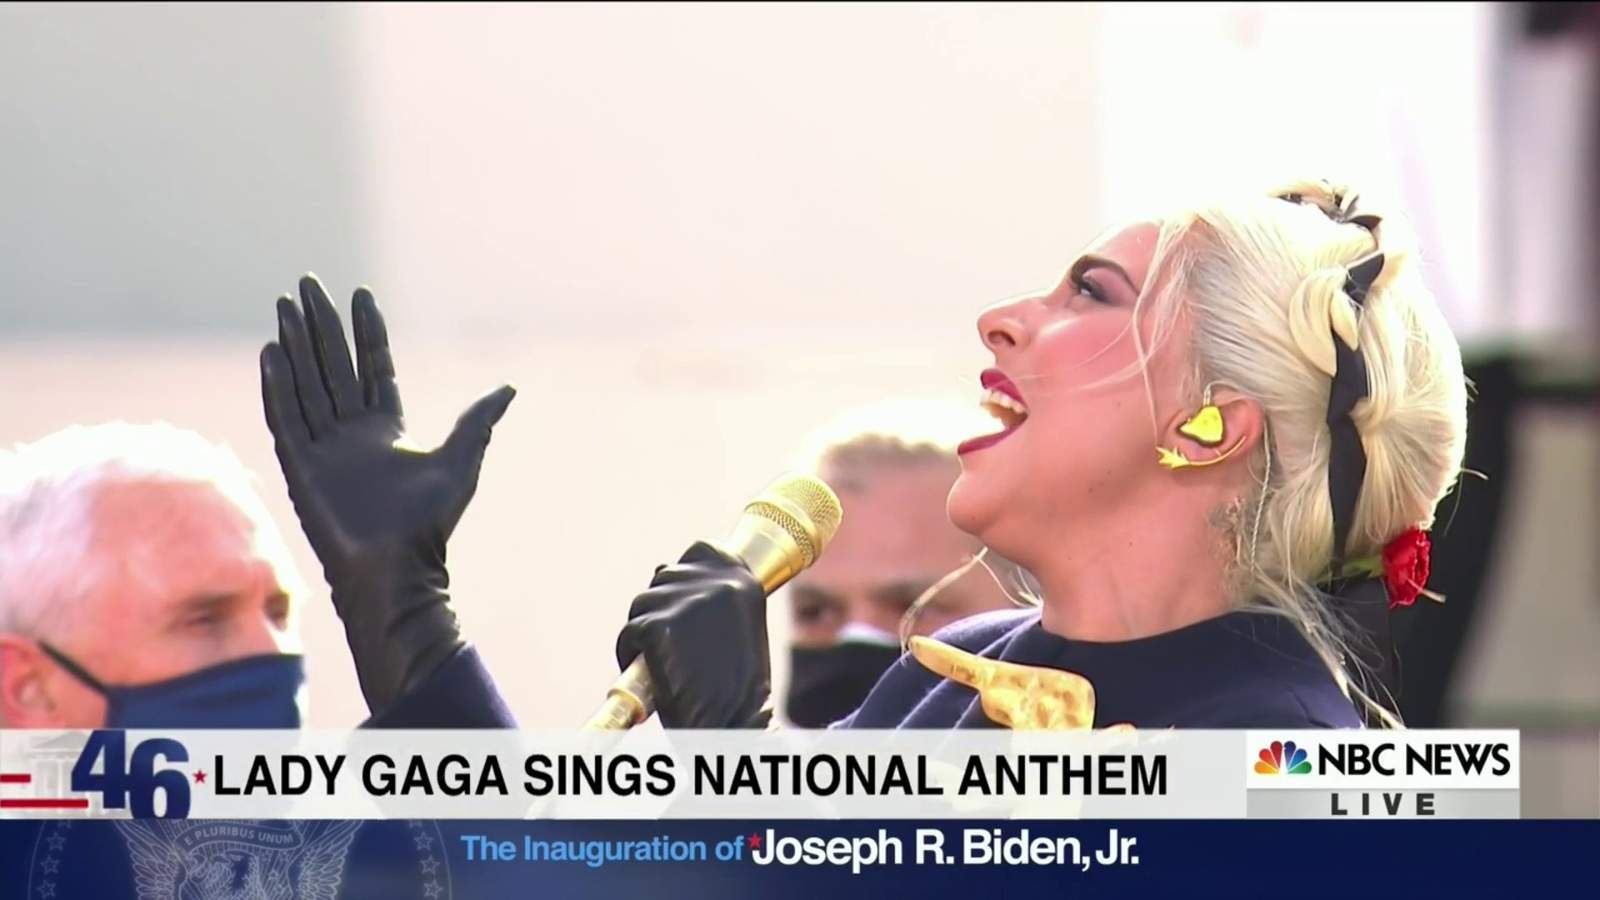 Lady Gaga delivers emotional National Anthem during inauguration